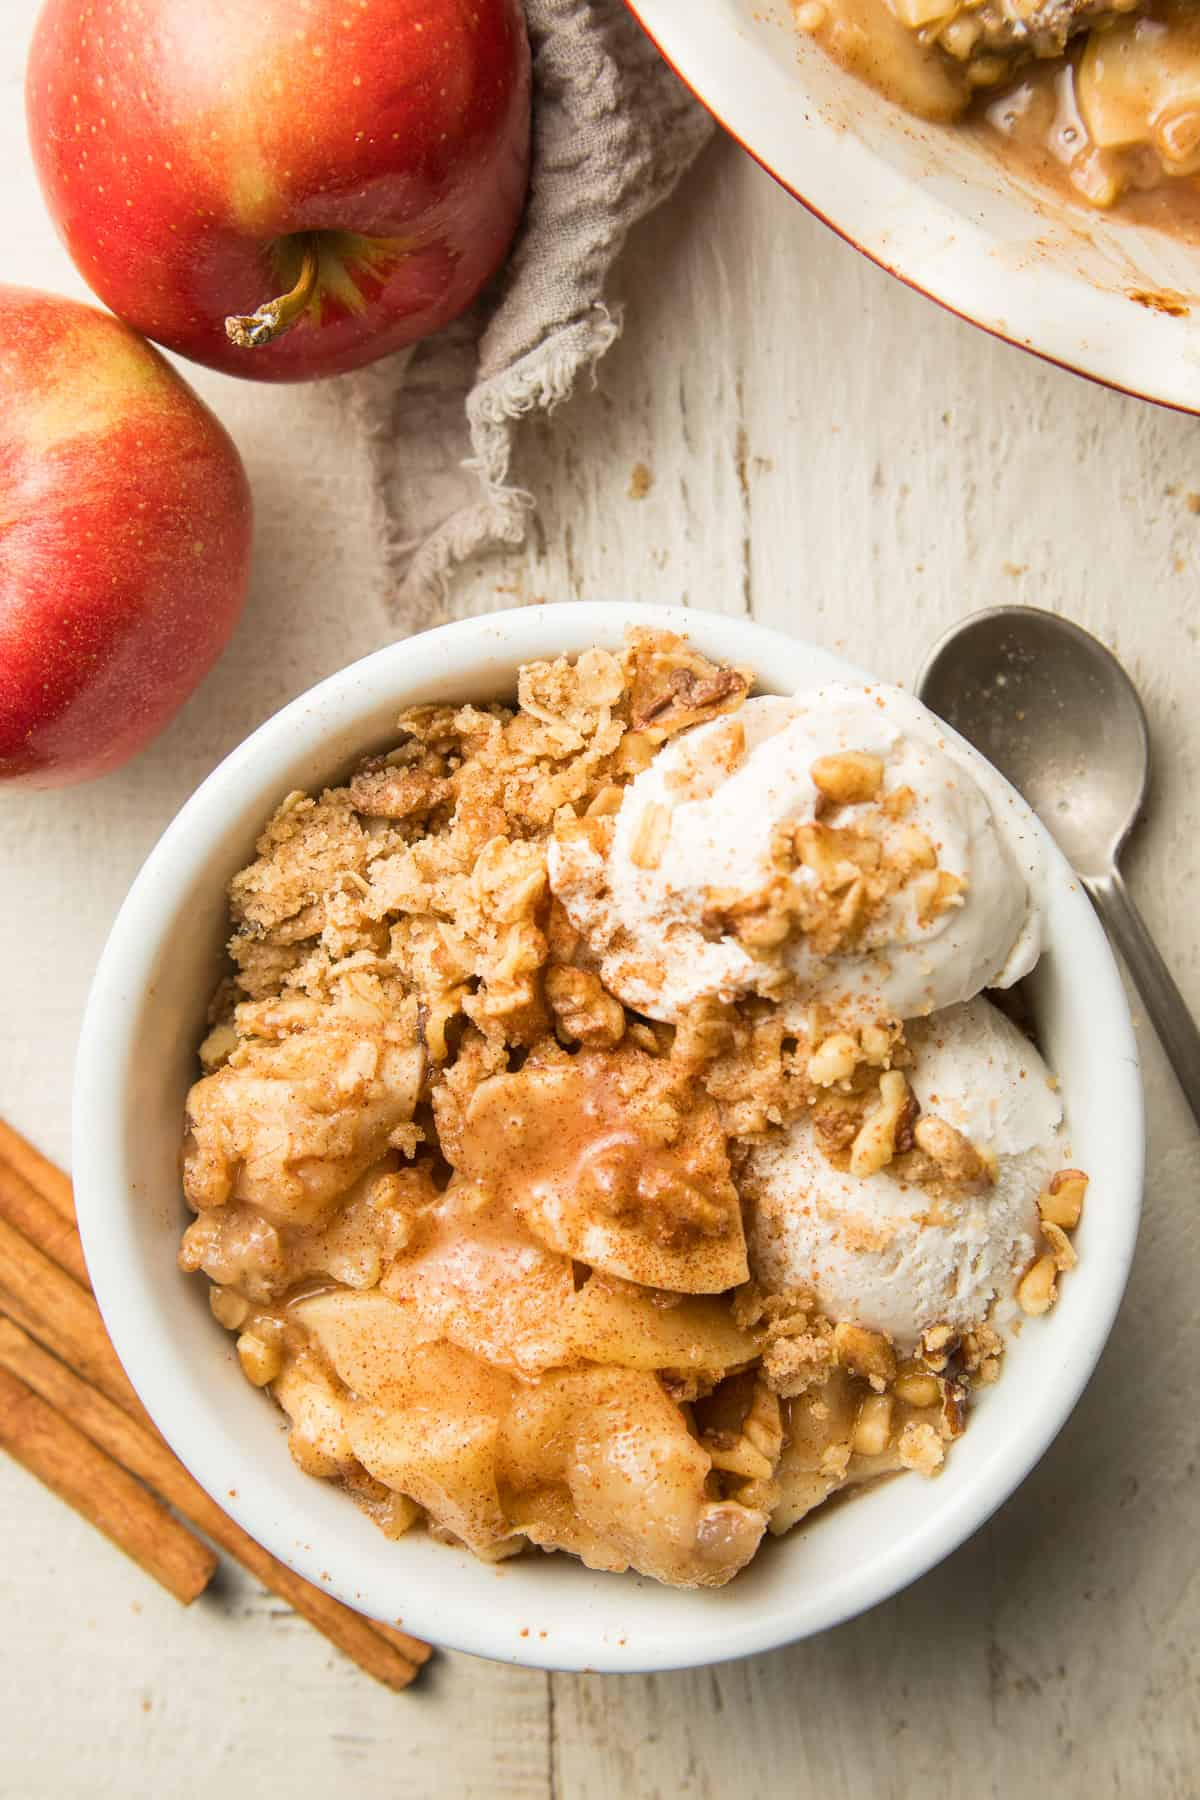 White Wooden Surface Set with Apples, Cinnamon Sticks, Baking Dish, and Bowl of Vegan Apple Crisp with Ice Cream